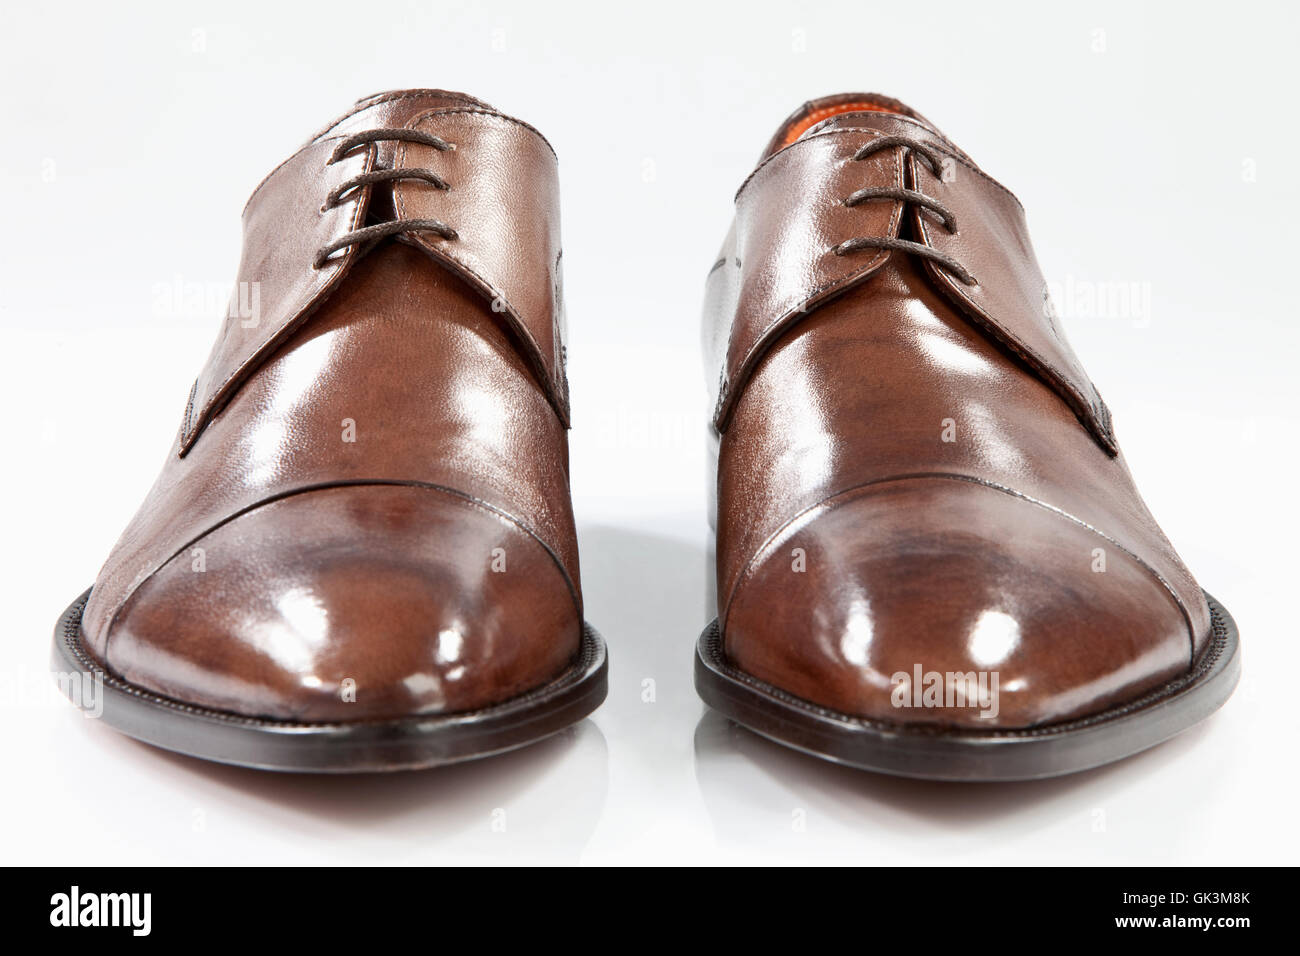 mens leather shoes - Stock Image